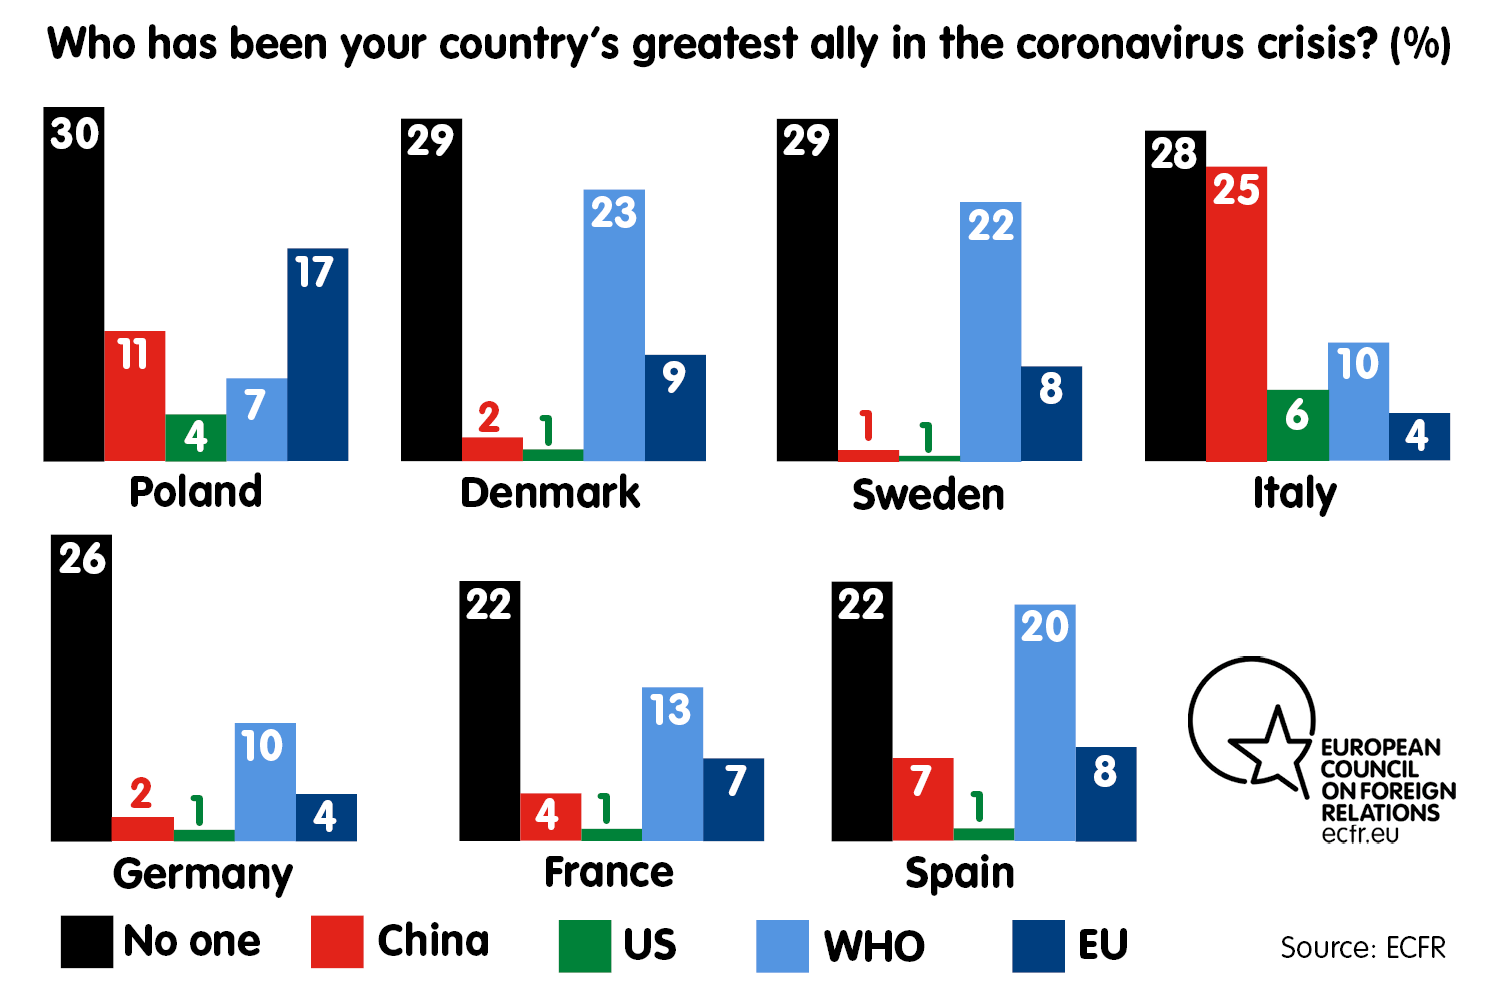 Who has been your country's greatest ally in the coronavirus crisis?